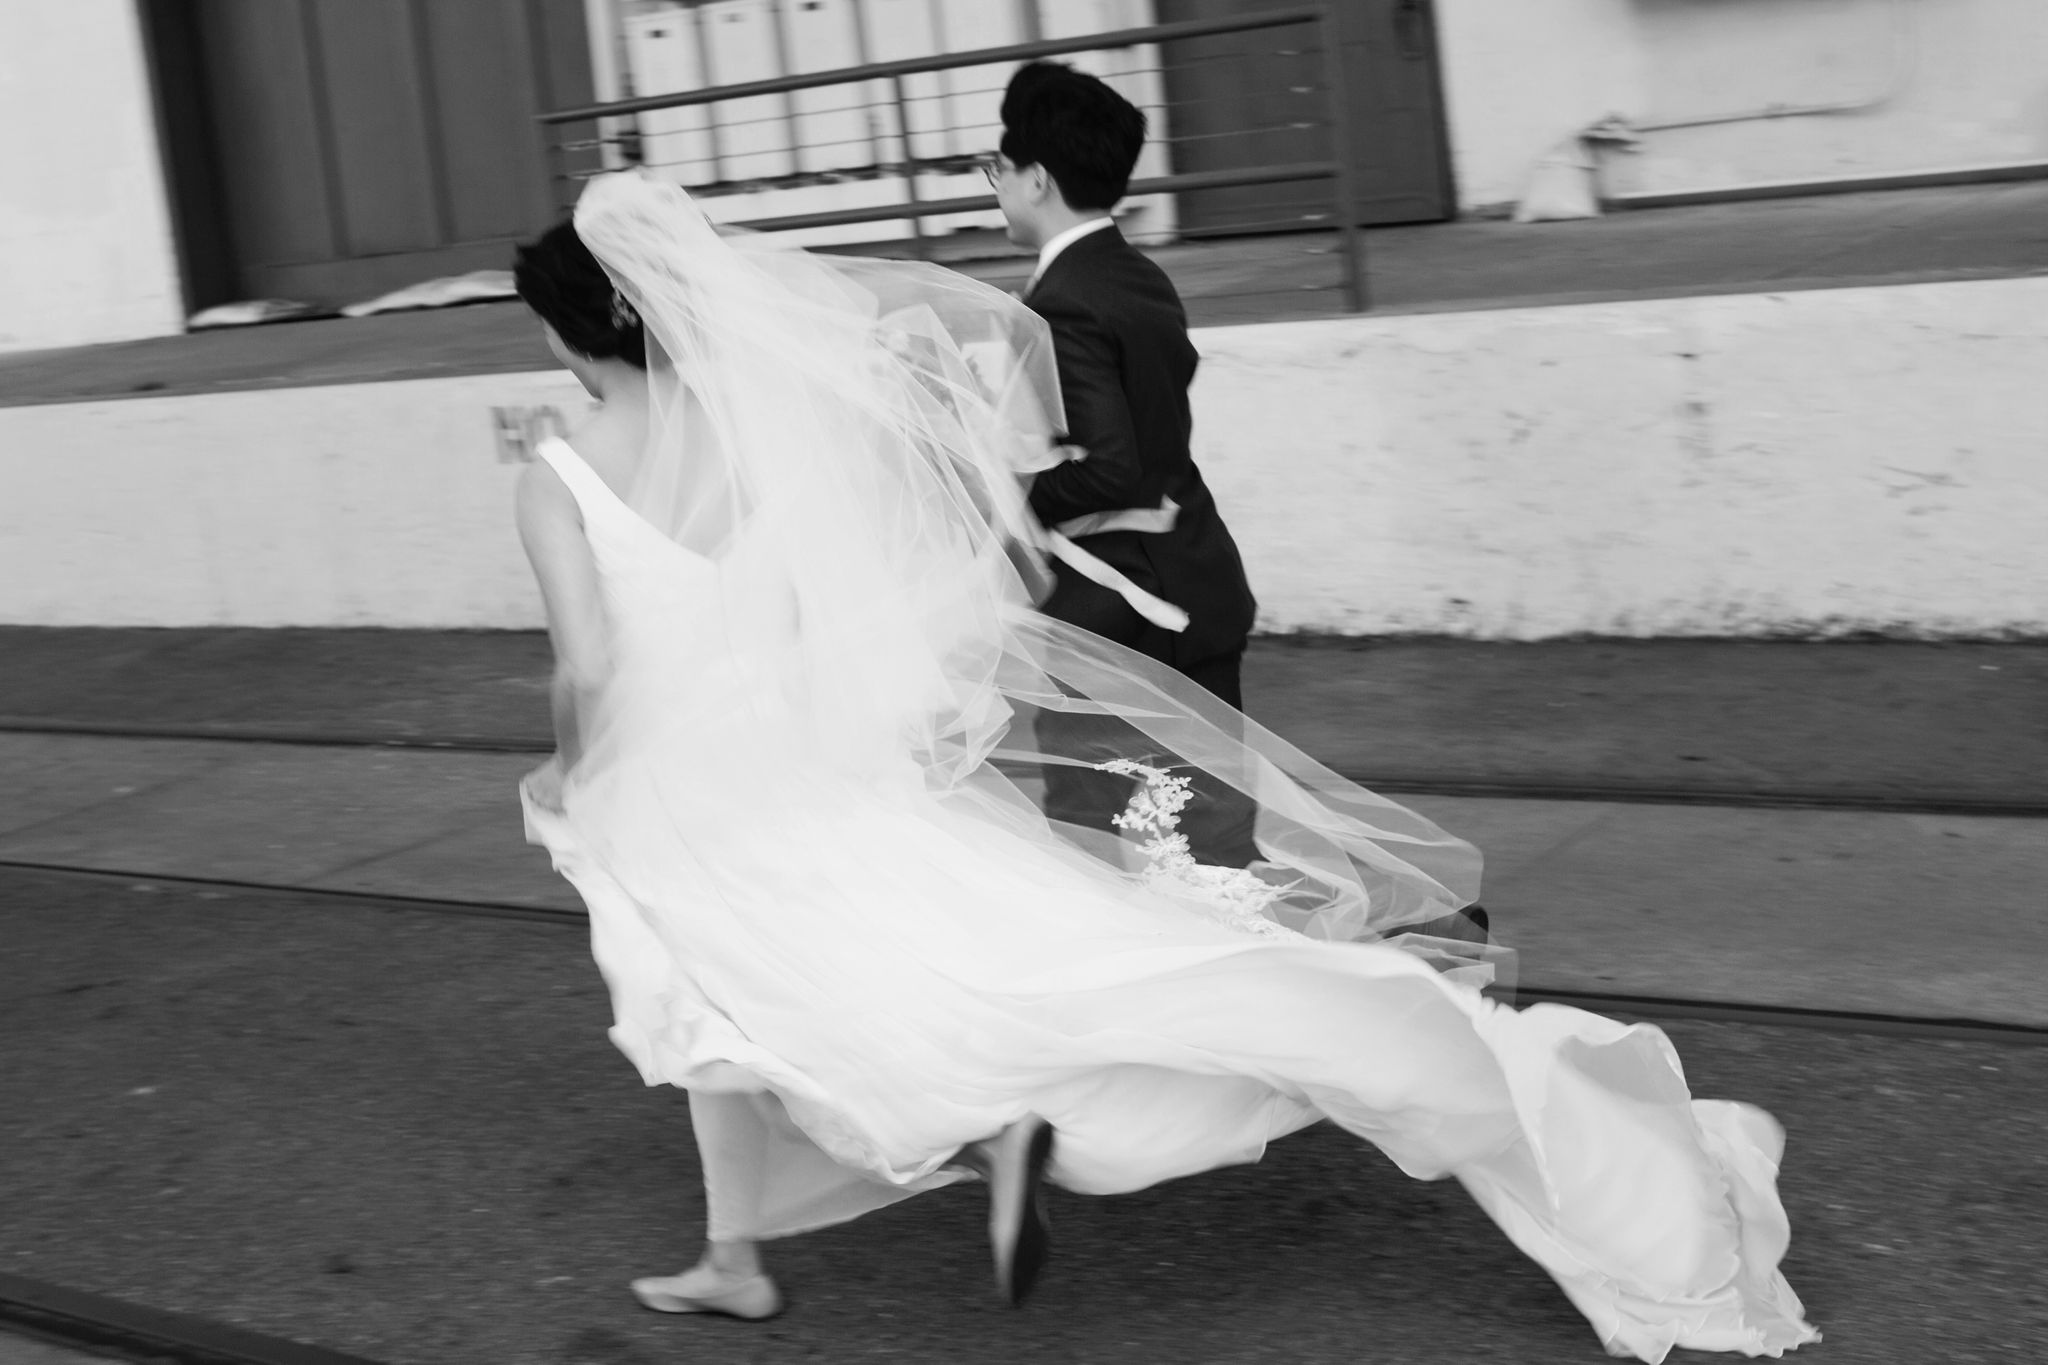 We love hearing our clients' ideas. When we scouted, our bride Randa mentioned that she liked photos with motion so we made it a priority to get photos with movement on her's and Chrisna's wedding day.